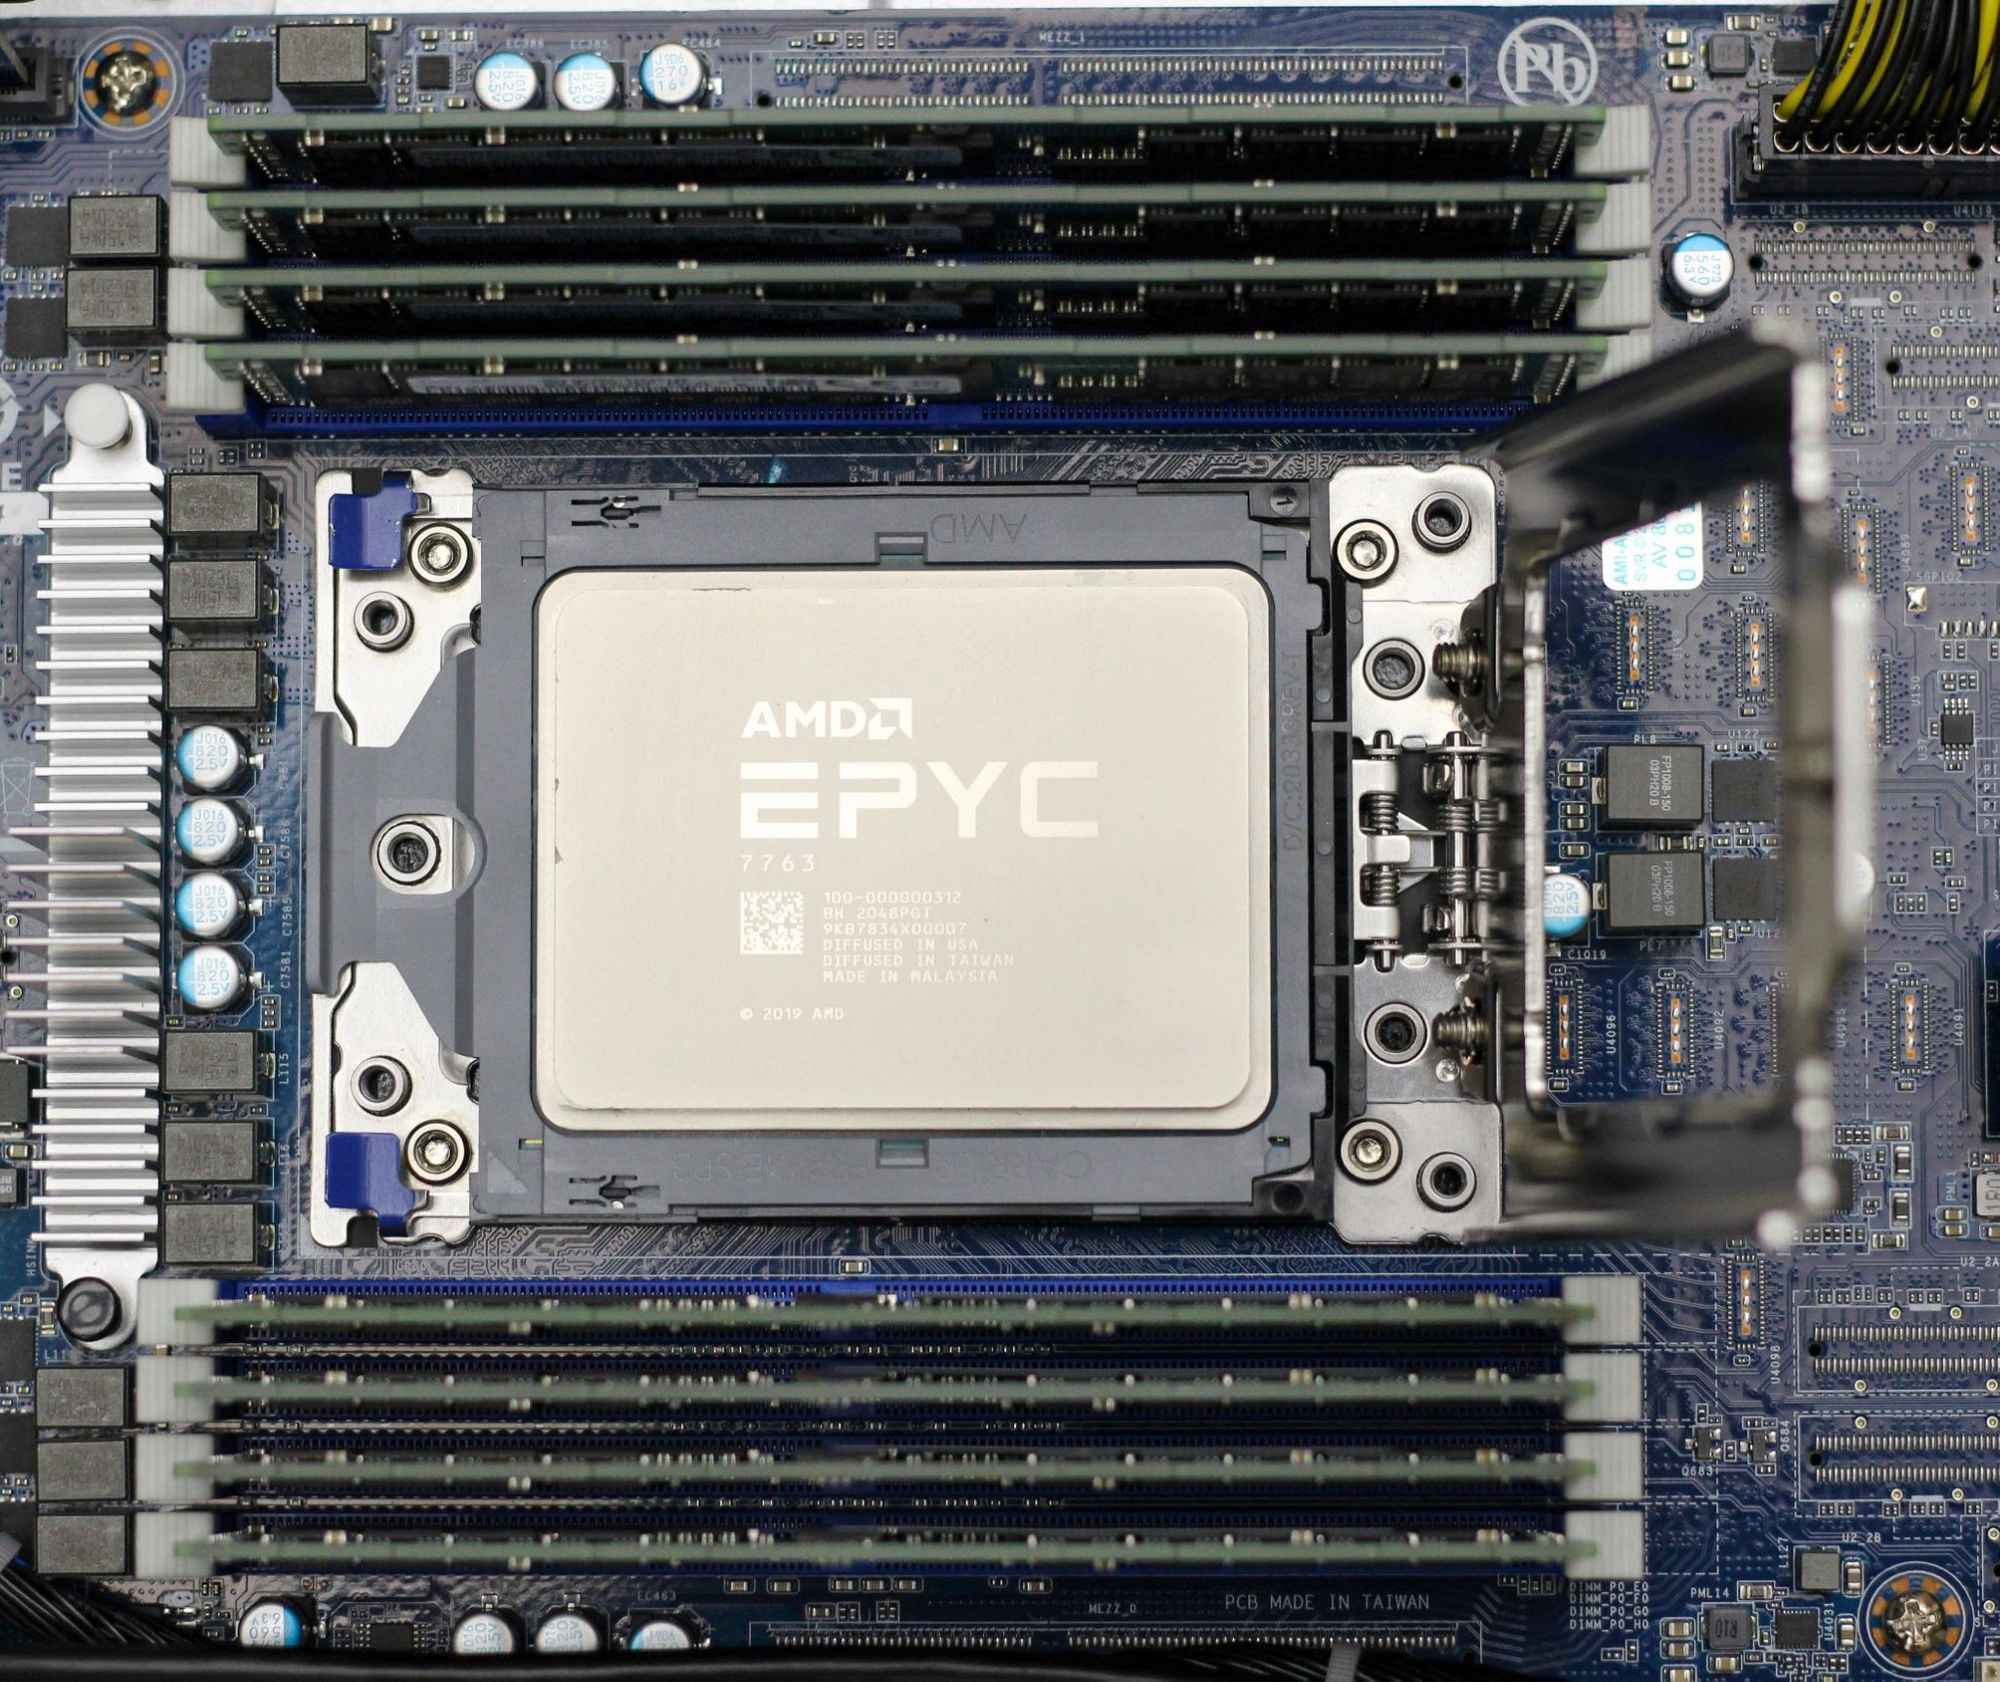 The EPYC journey continues to Milan in Cloudflare's 11th generation Edge Server